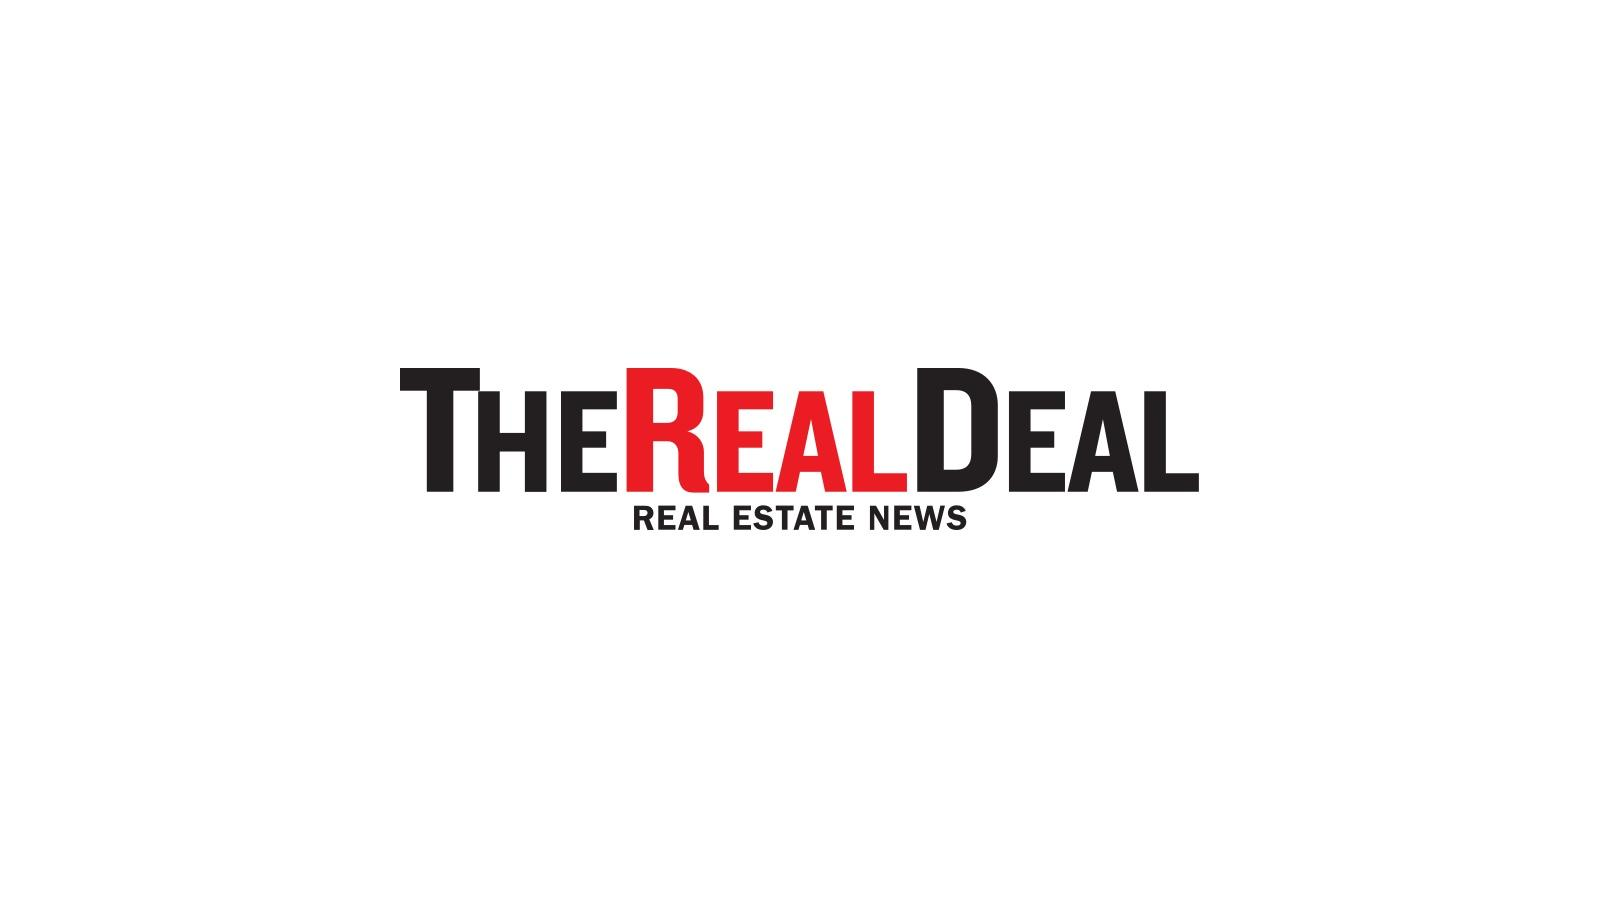 New York Real Estate News - The Real Deal